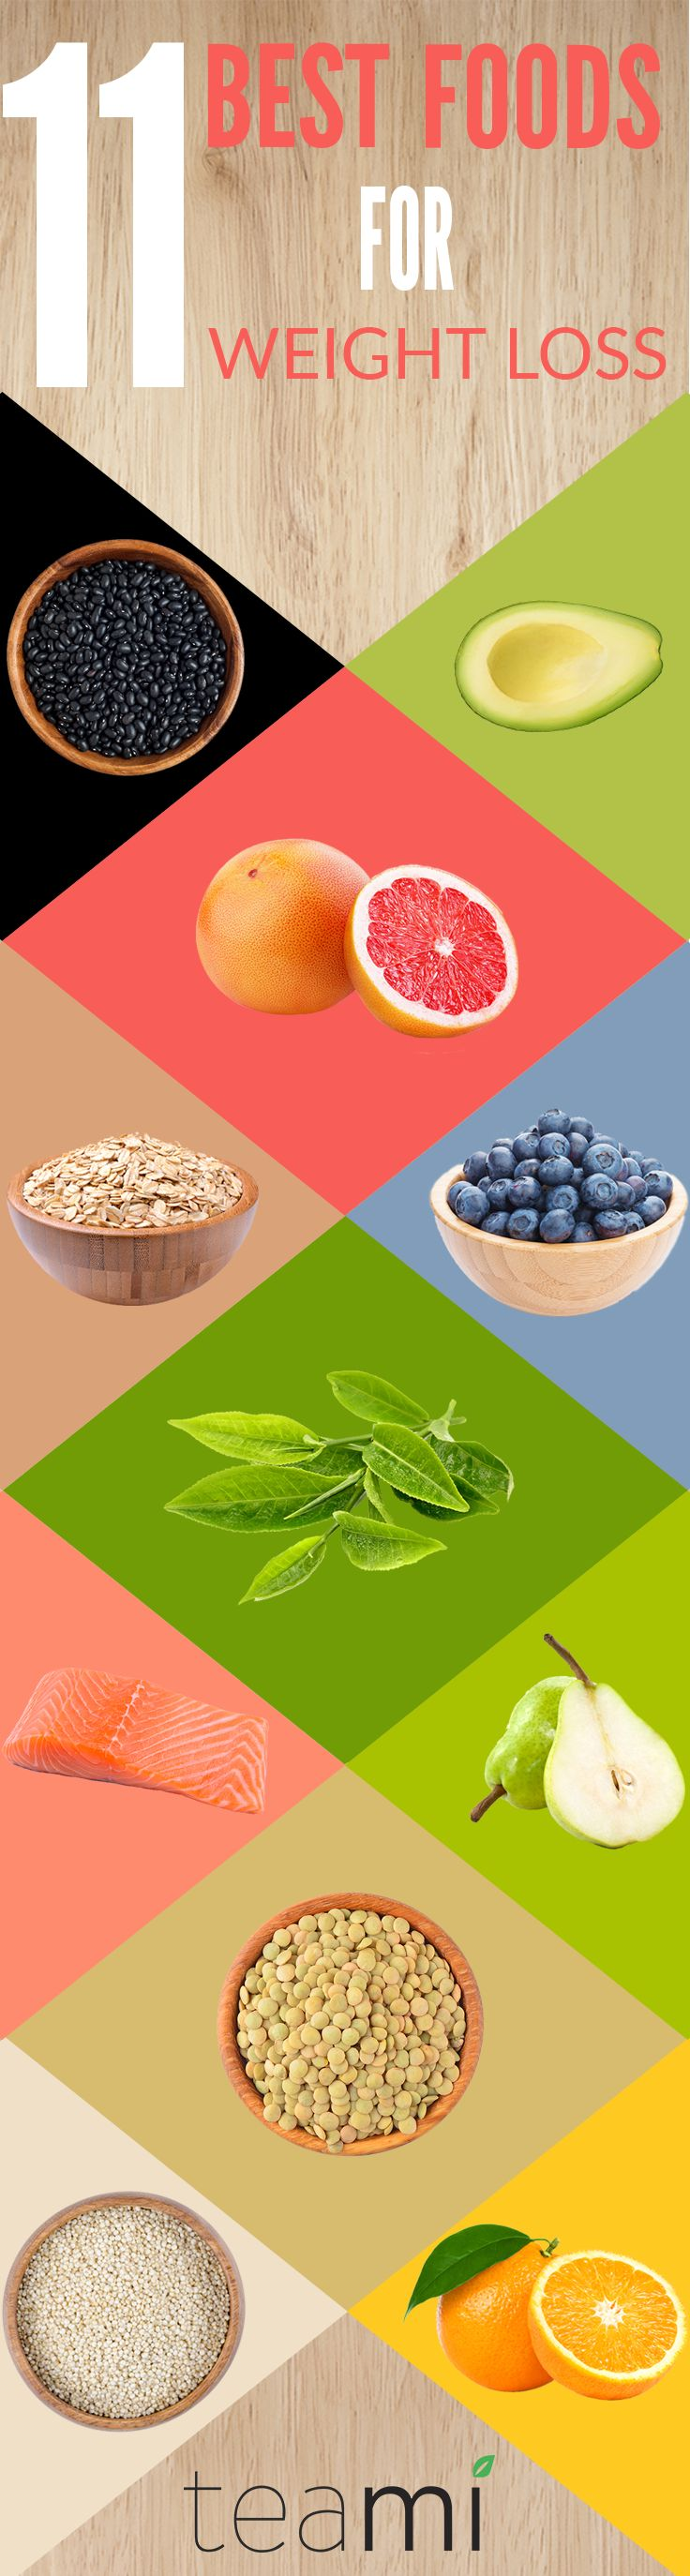 These foods are loaded with proteins your body loves and will not only improve how you look, but how you feel too!